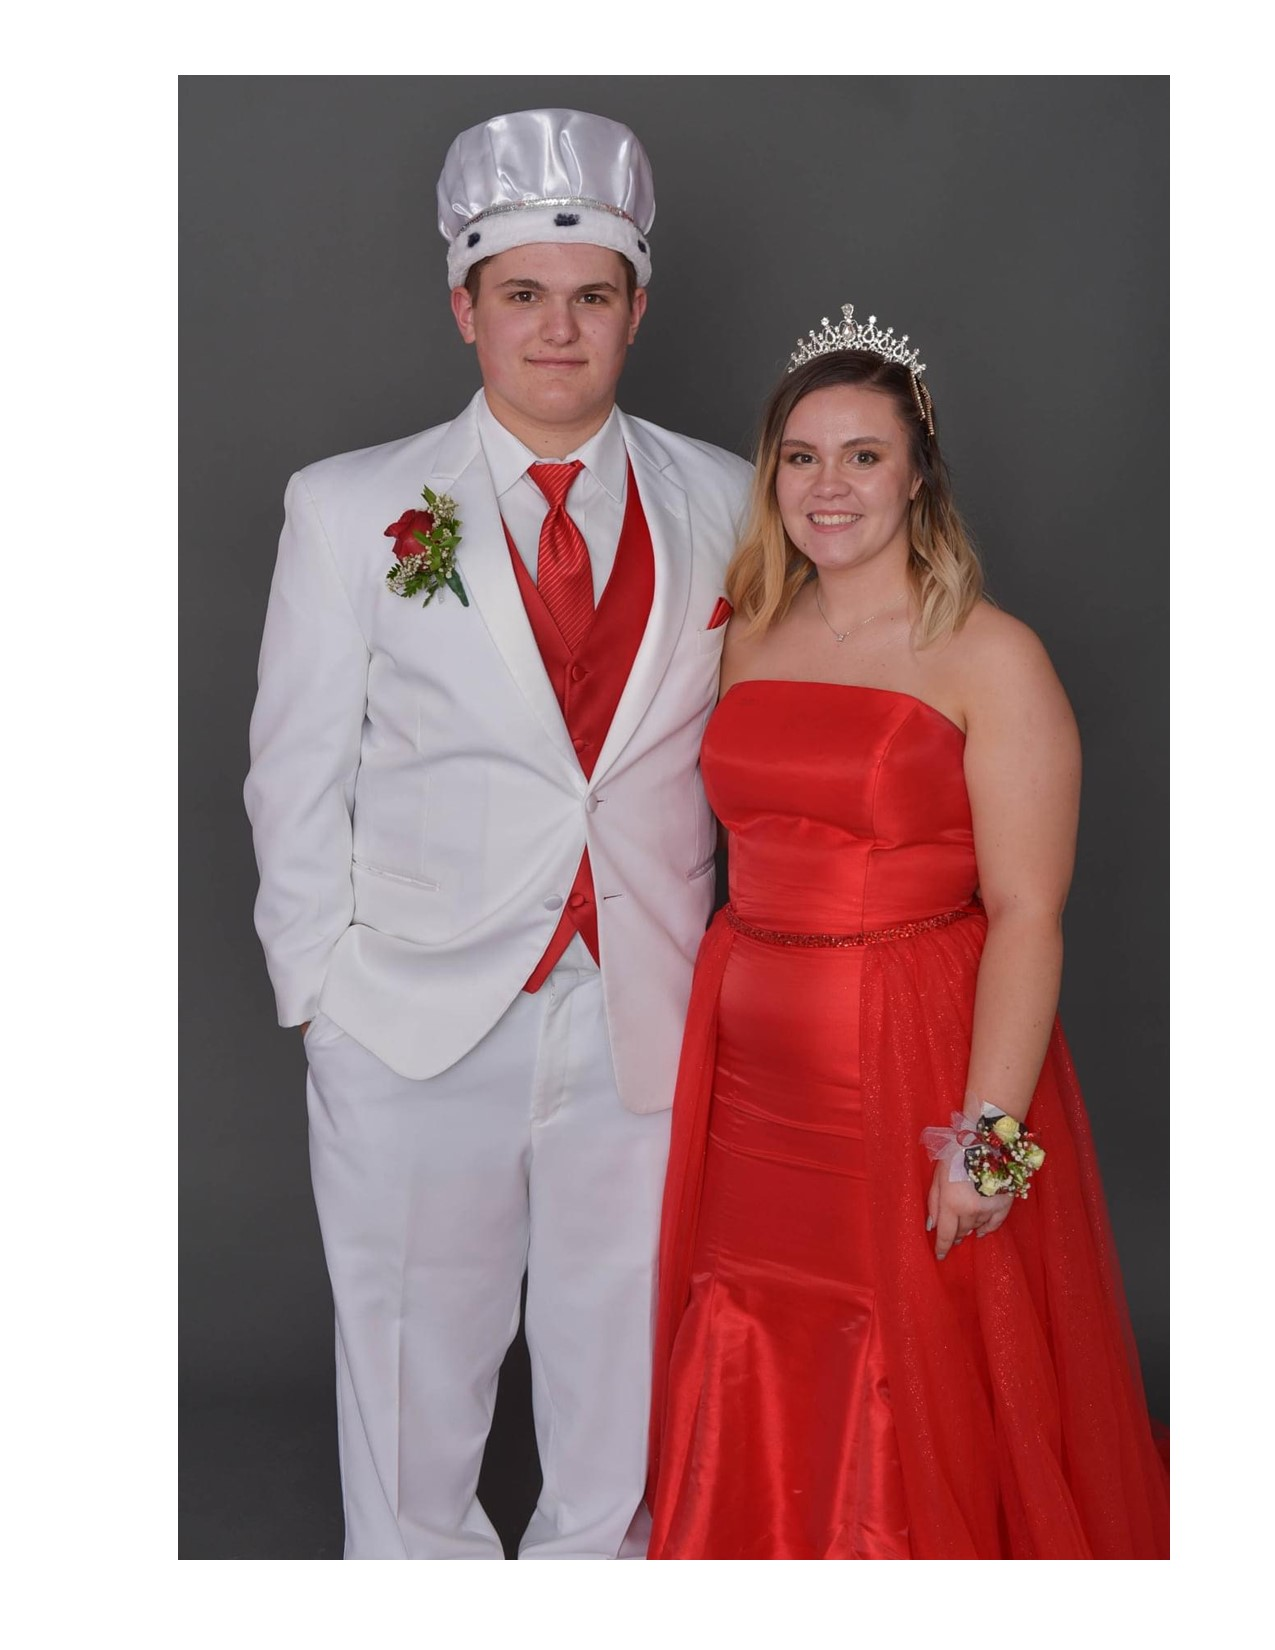 The senior prom king and queen were Hayden VanCoulter and Abbigayle Spencer. (Submitted photos)